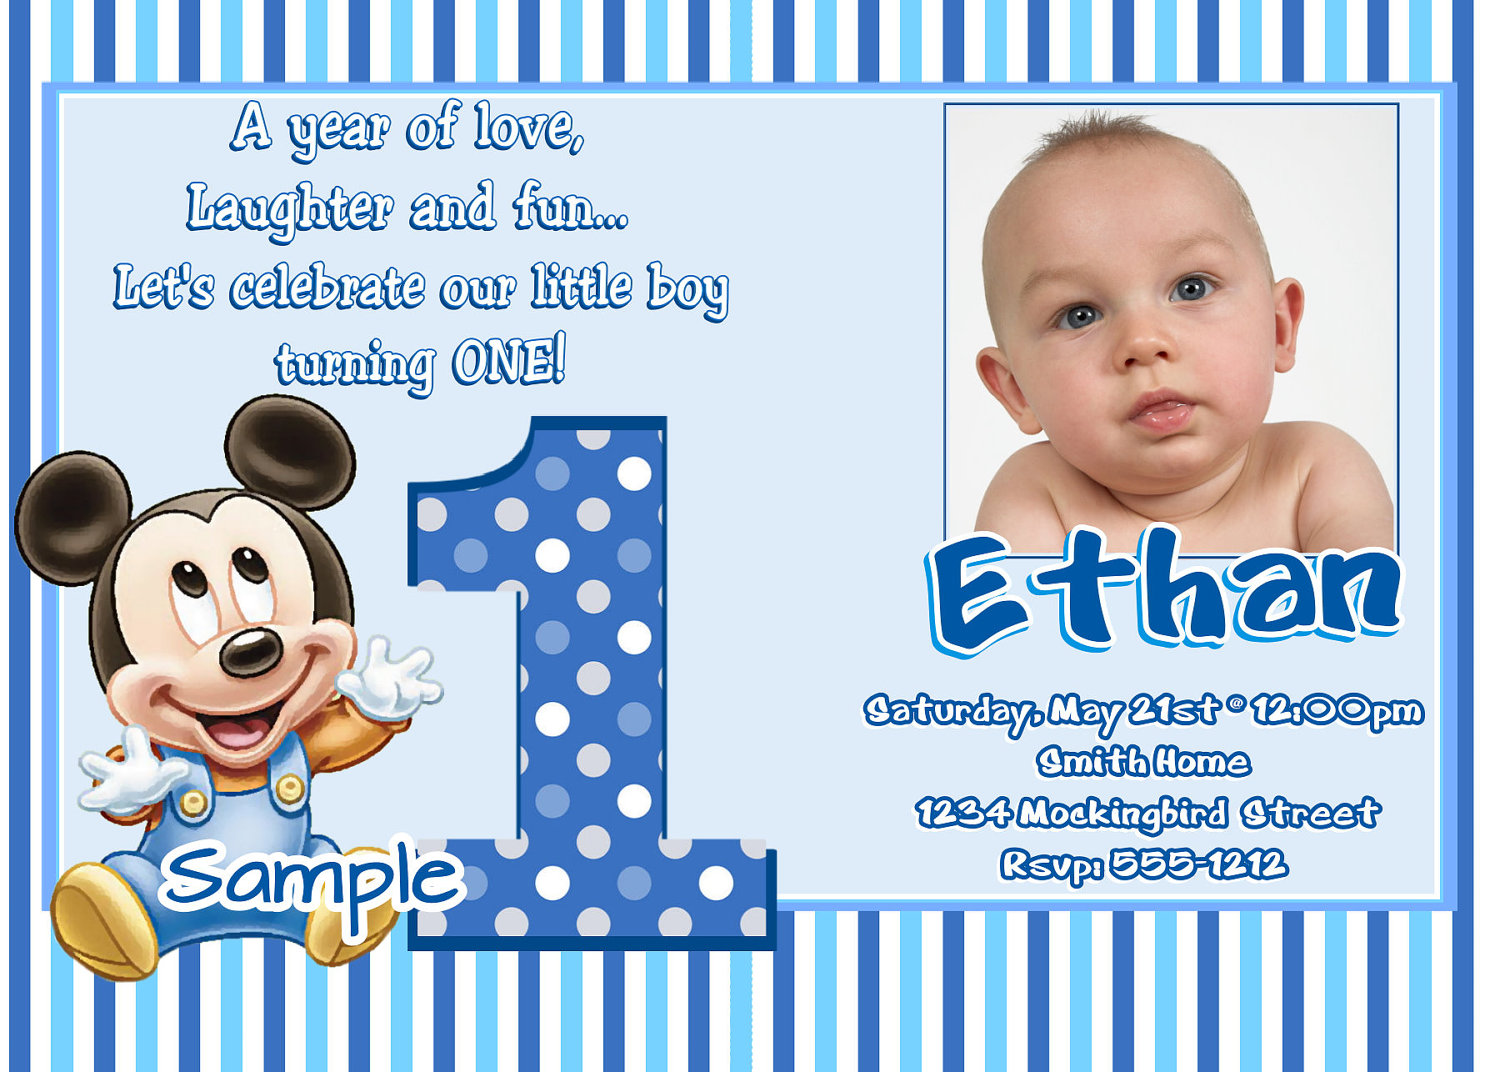 1st birthday invitation quotes for baby boy ; 5211b57da72b79e7361789891ed6b508